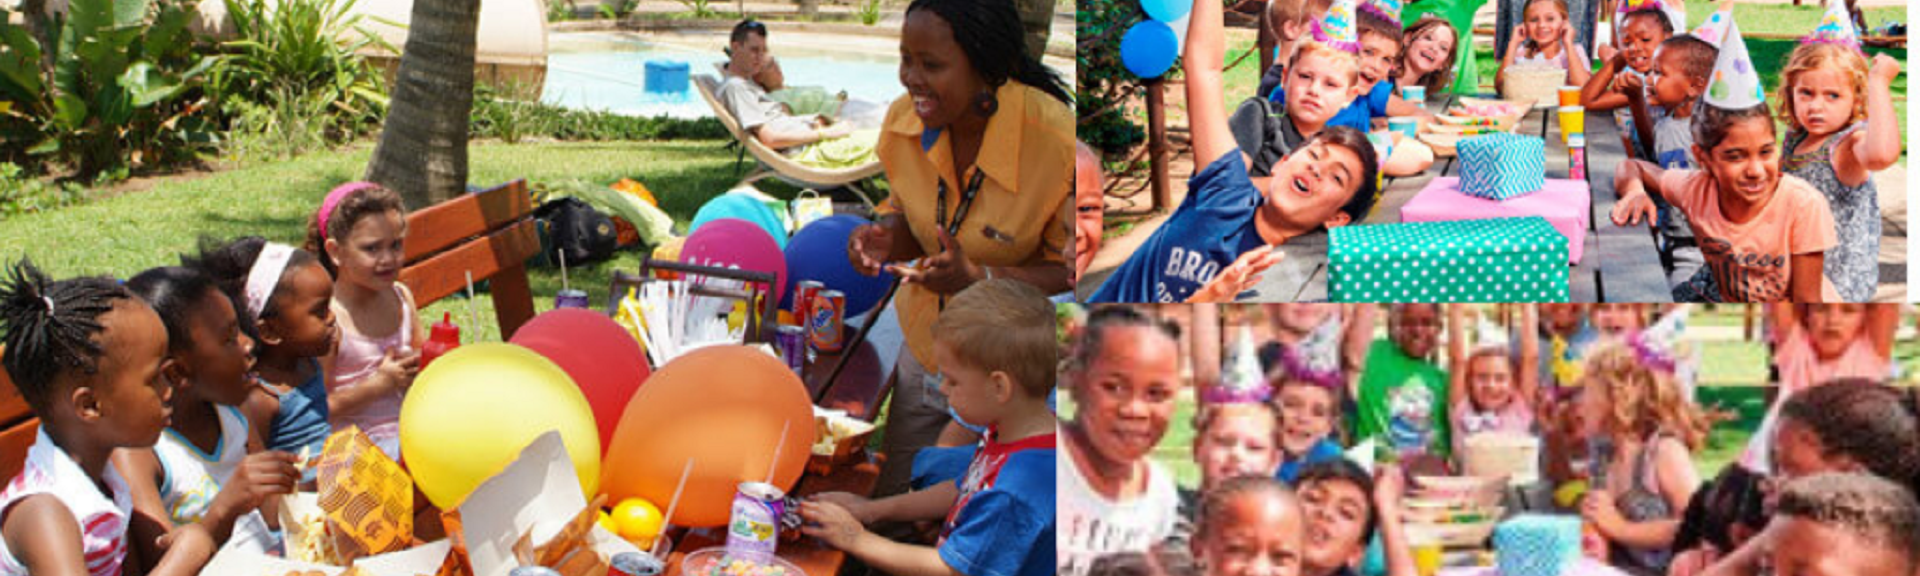 Ushaka Kids World | Durban | Kids Party Venue